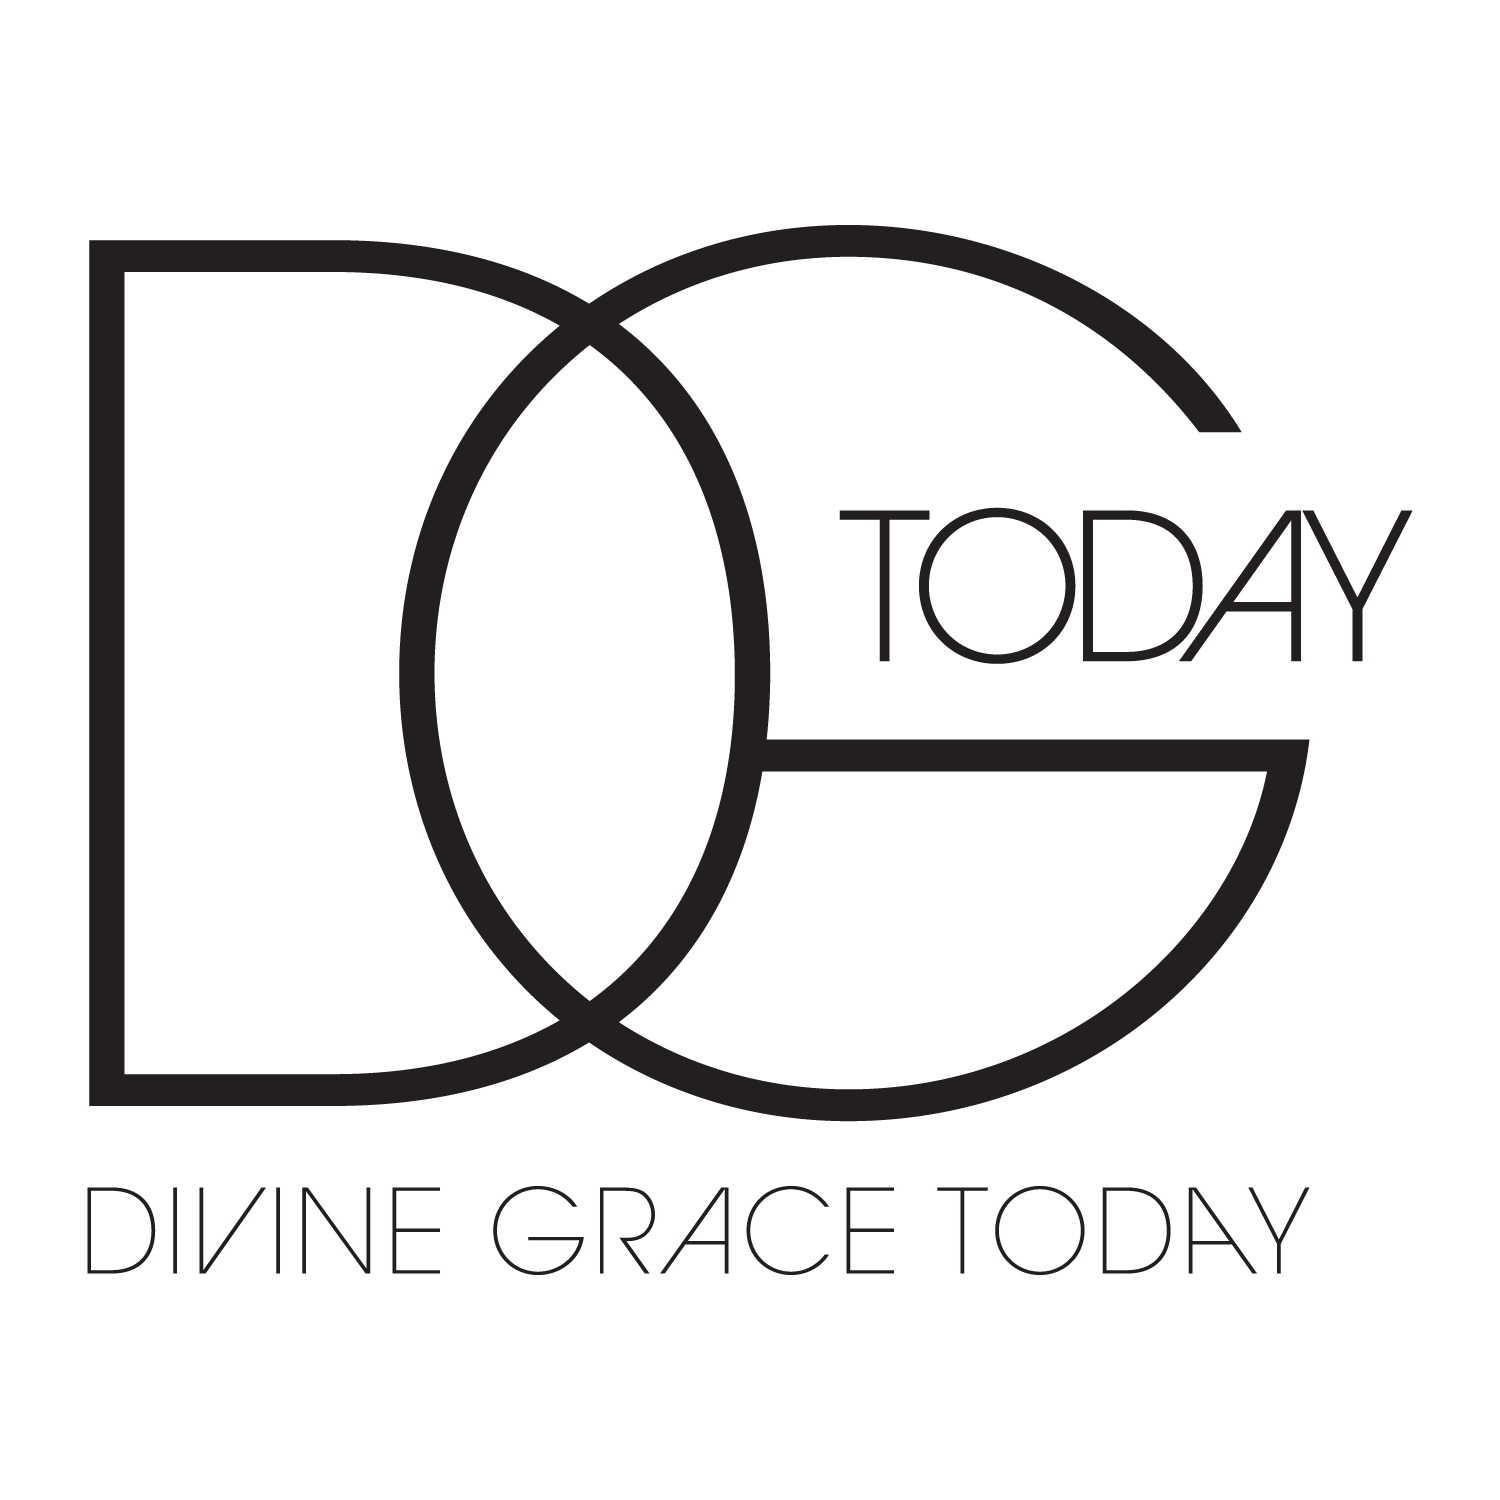 Divine Grace Today